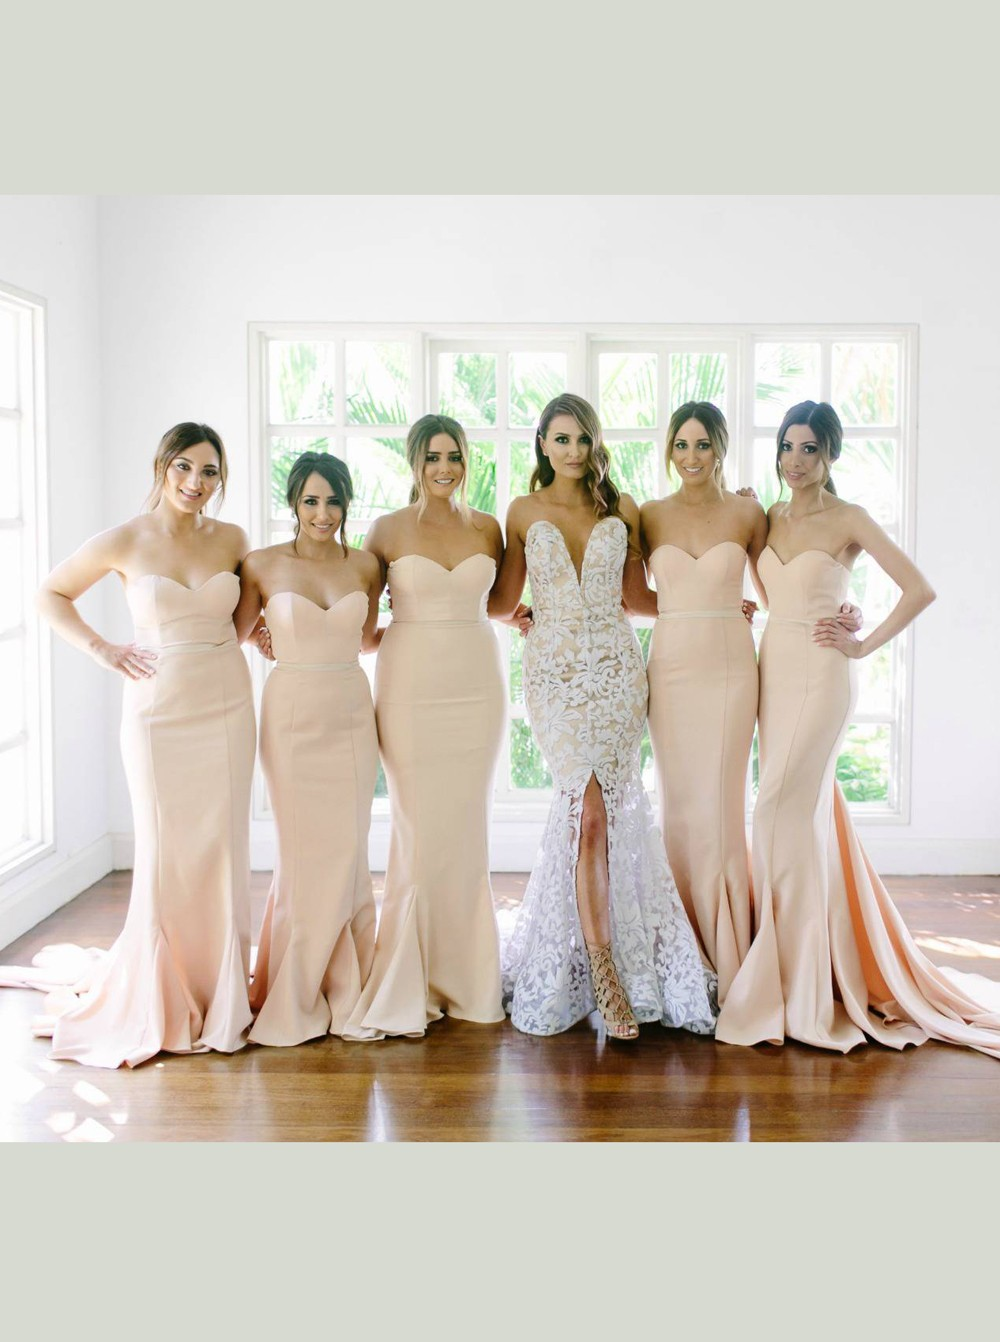 Simple mermaid bridesmaid dresses long bridesmaid dresses simple mermaid bridesmaid dresses long bridesmaid dresses affordable bridesmaid dresses sexy bridesmaid dresses ombrellifo Images